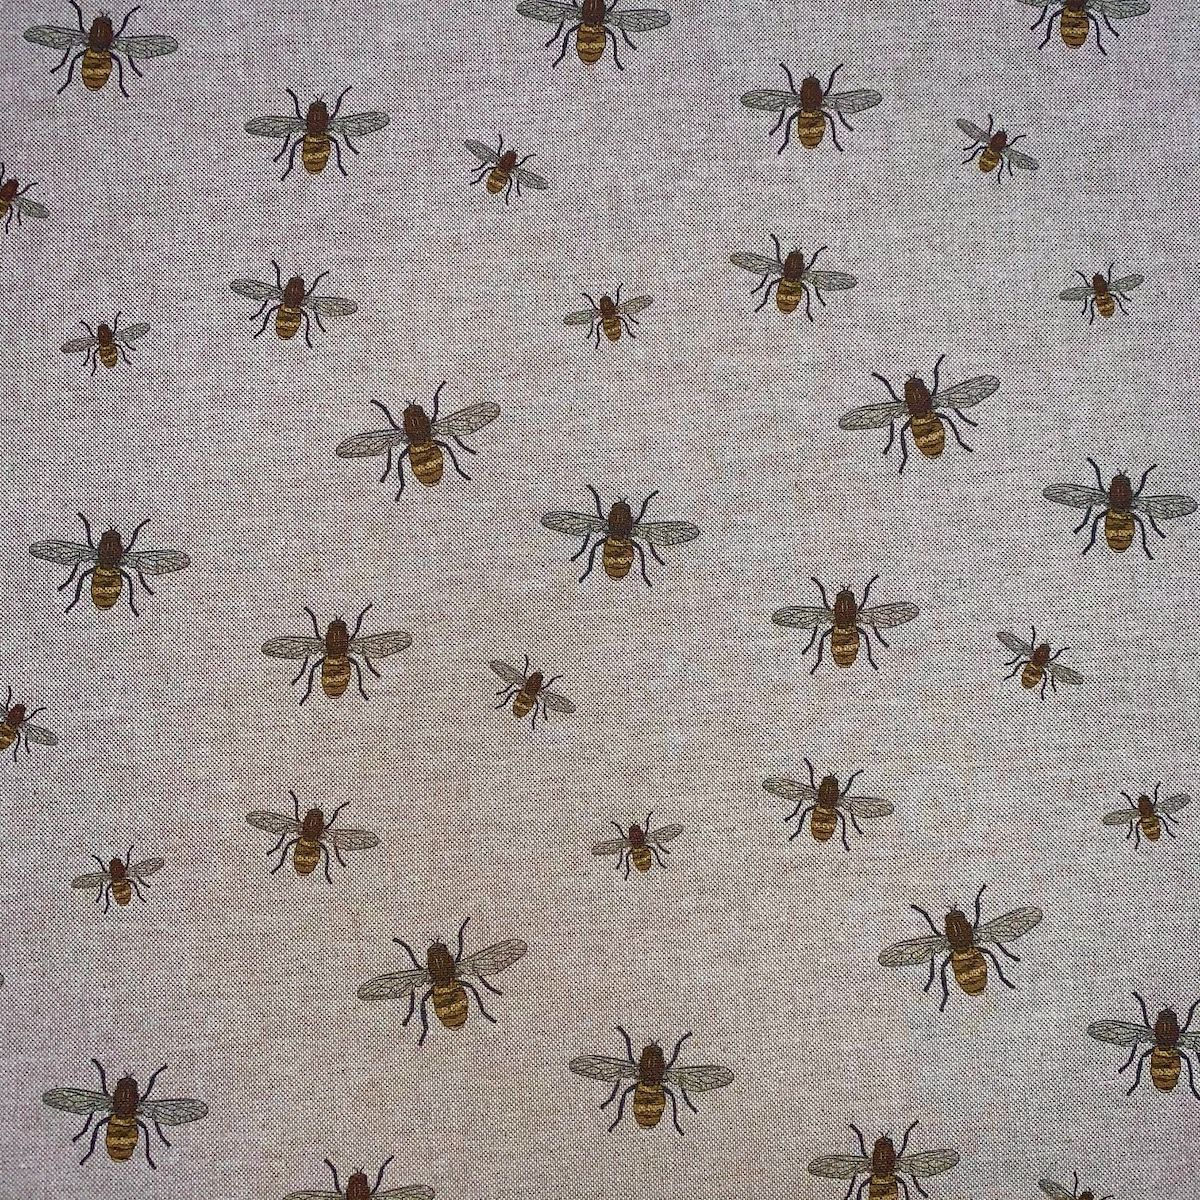 Digital Print Medium Weight Decorative Upholstery Fabric - Bees On Natural